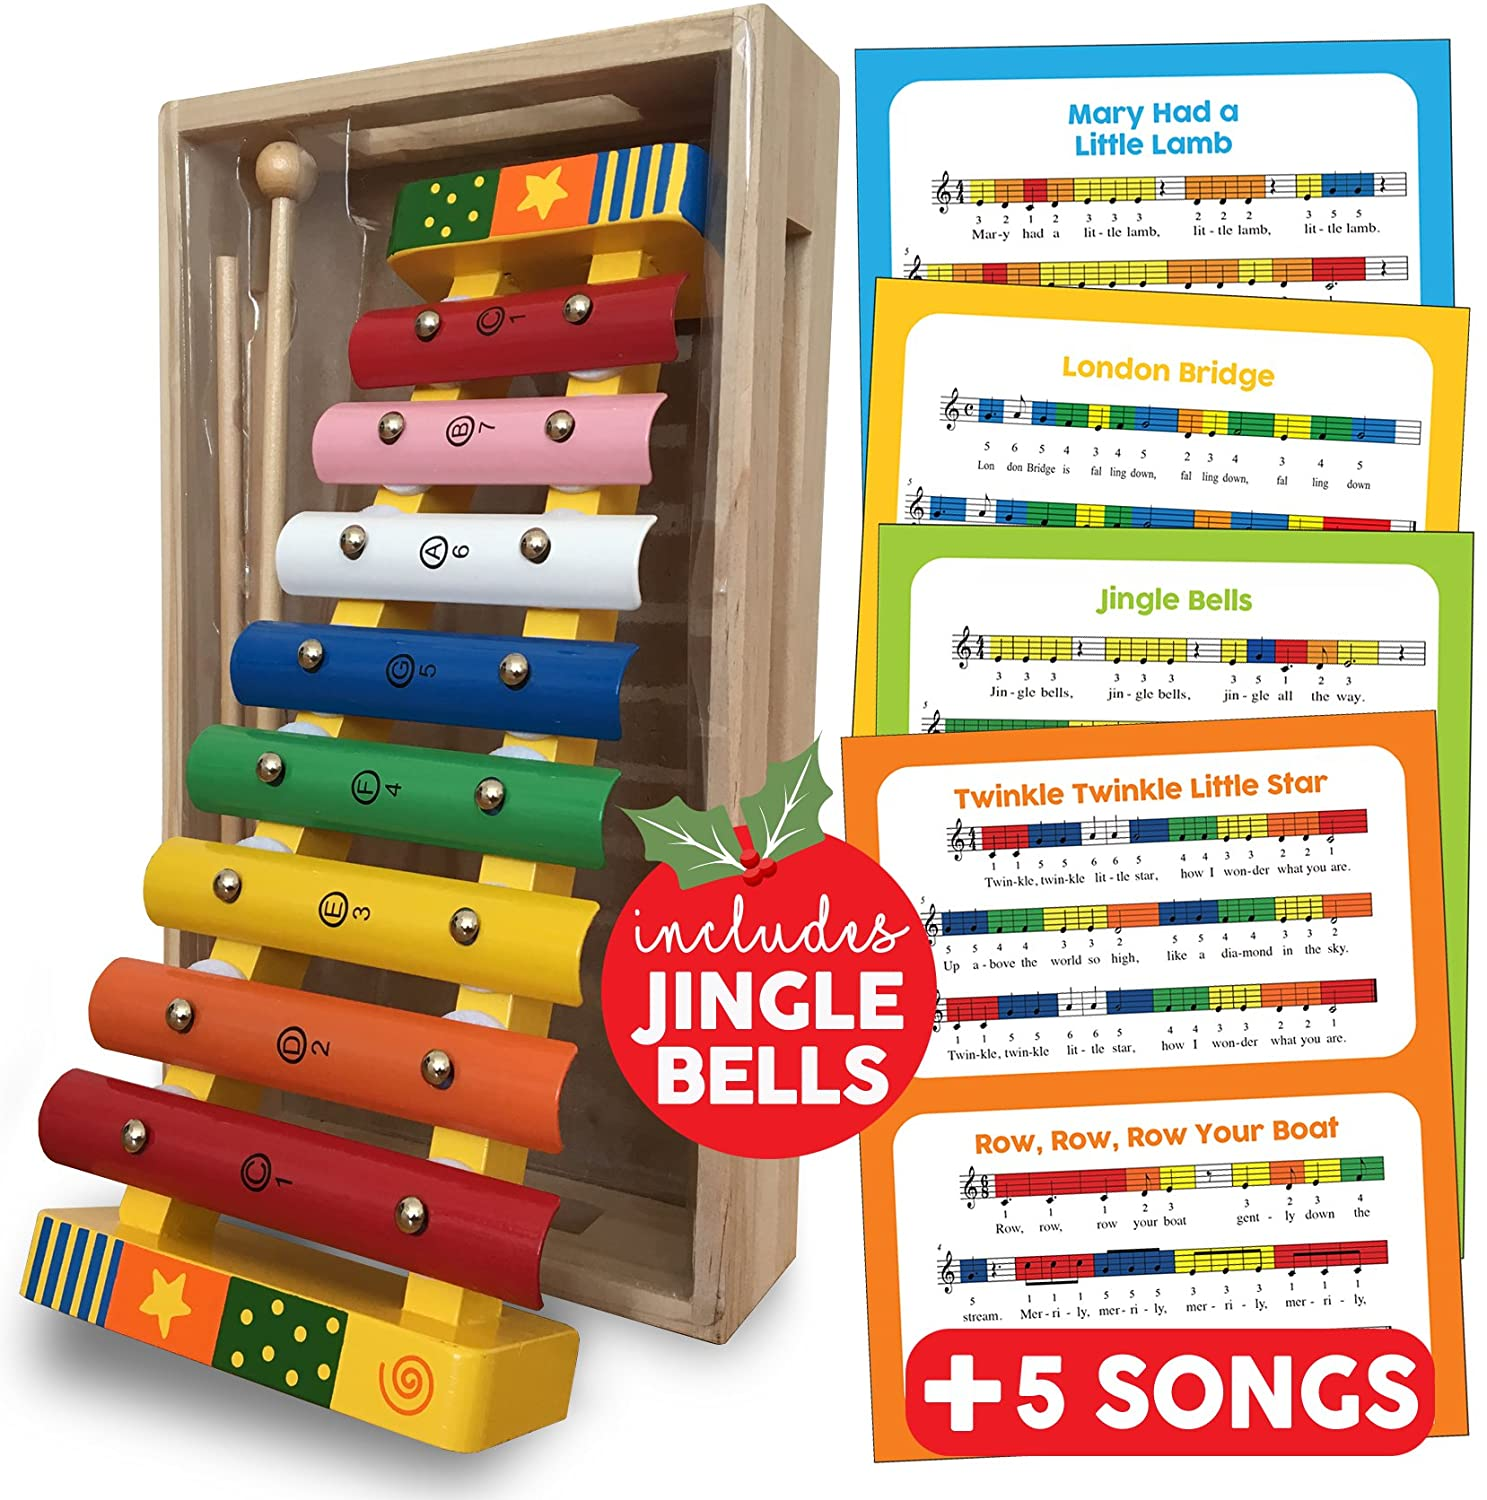 Xylophone Glockenspiel Musical Instrument Wooden Toy Percussion Musical Instrument Gift for Toddlers with Song Sheets and Wooden Storage Box; Baby Musical Instruments Educational Percussion Sound Toy Gift; Musical Instruments for Toddlers Bee Smart Xylo_0